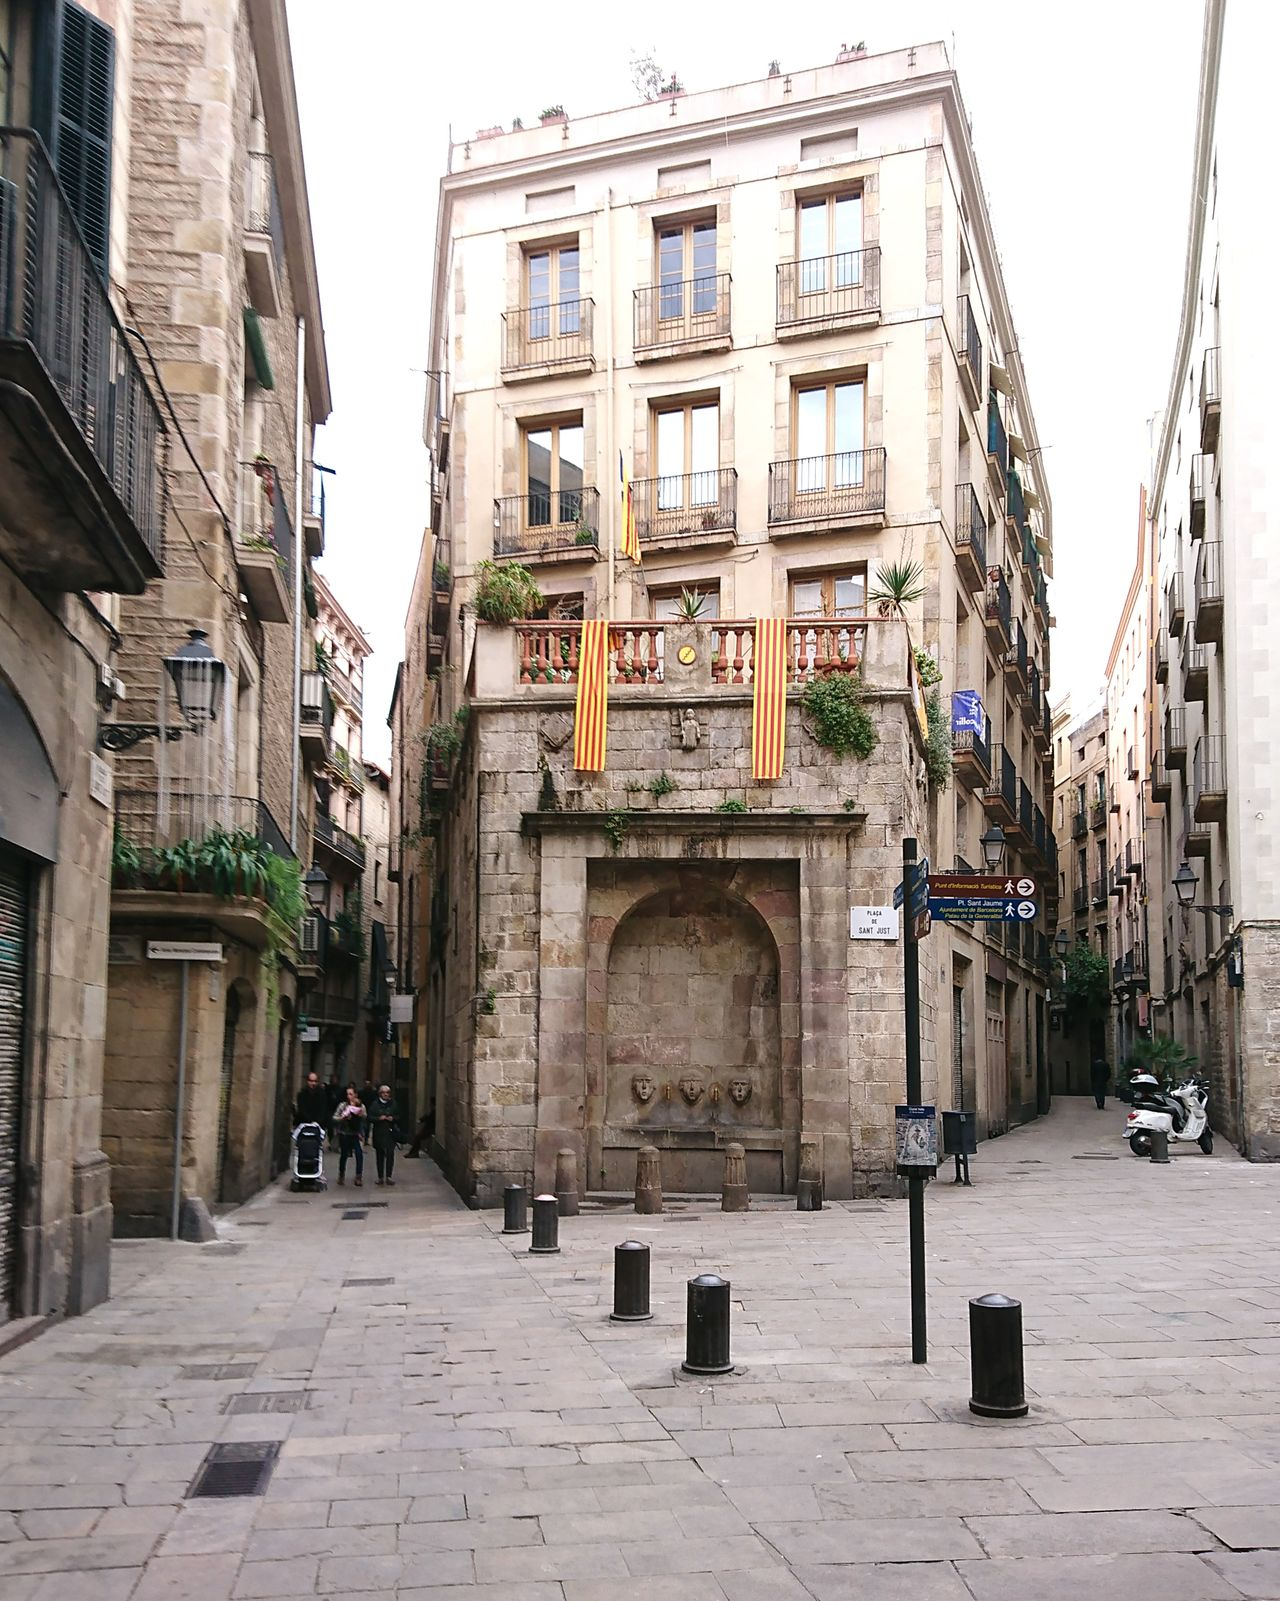 This old town... Architecture Building Exterior Built Structure History City Day Travel Destinations No People Outdoors Sky Barcelona Old Town Neighborhood Map